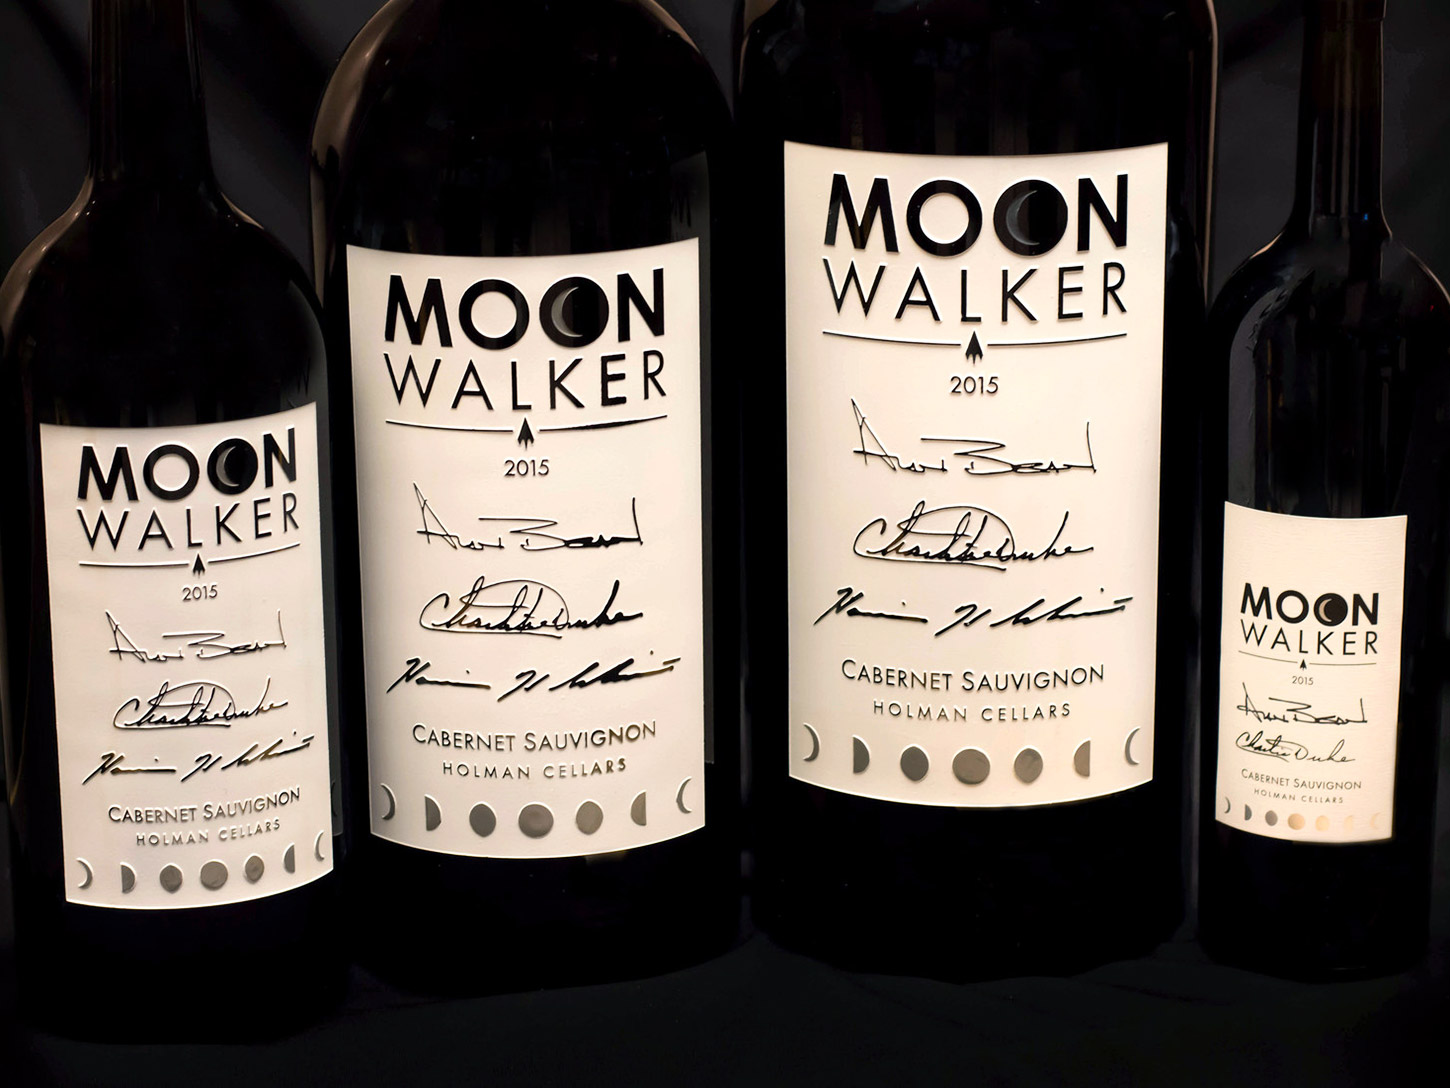 'Moonwalker' Wine Is a Drinkable Tribute to the Apollo Moon Missions